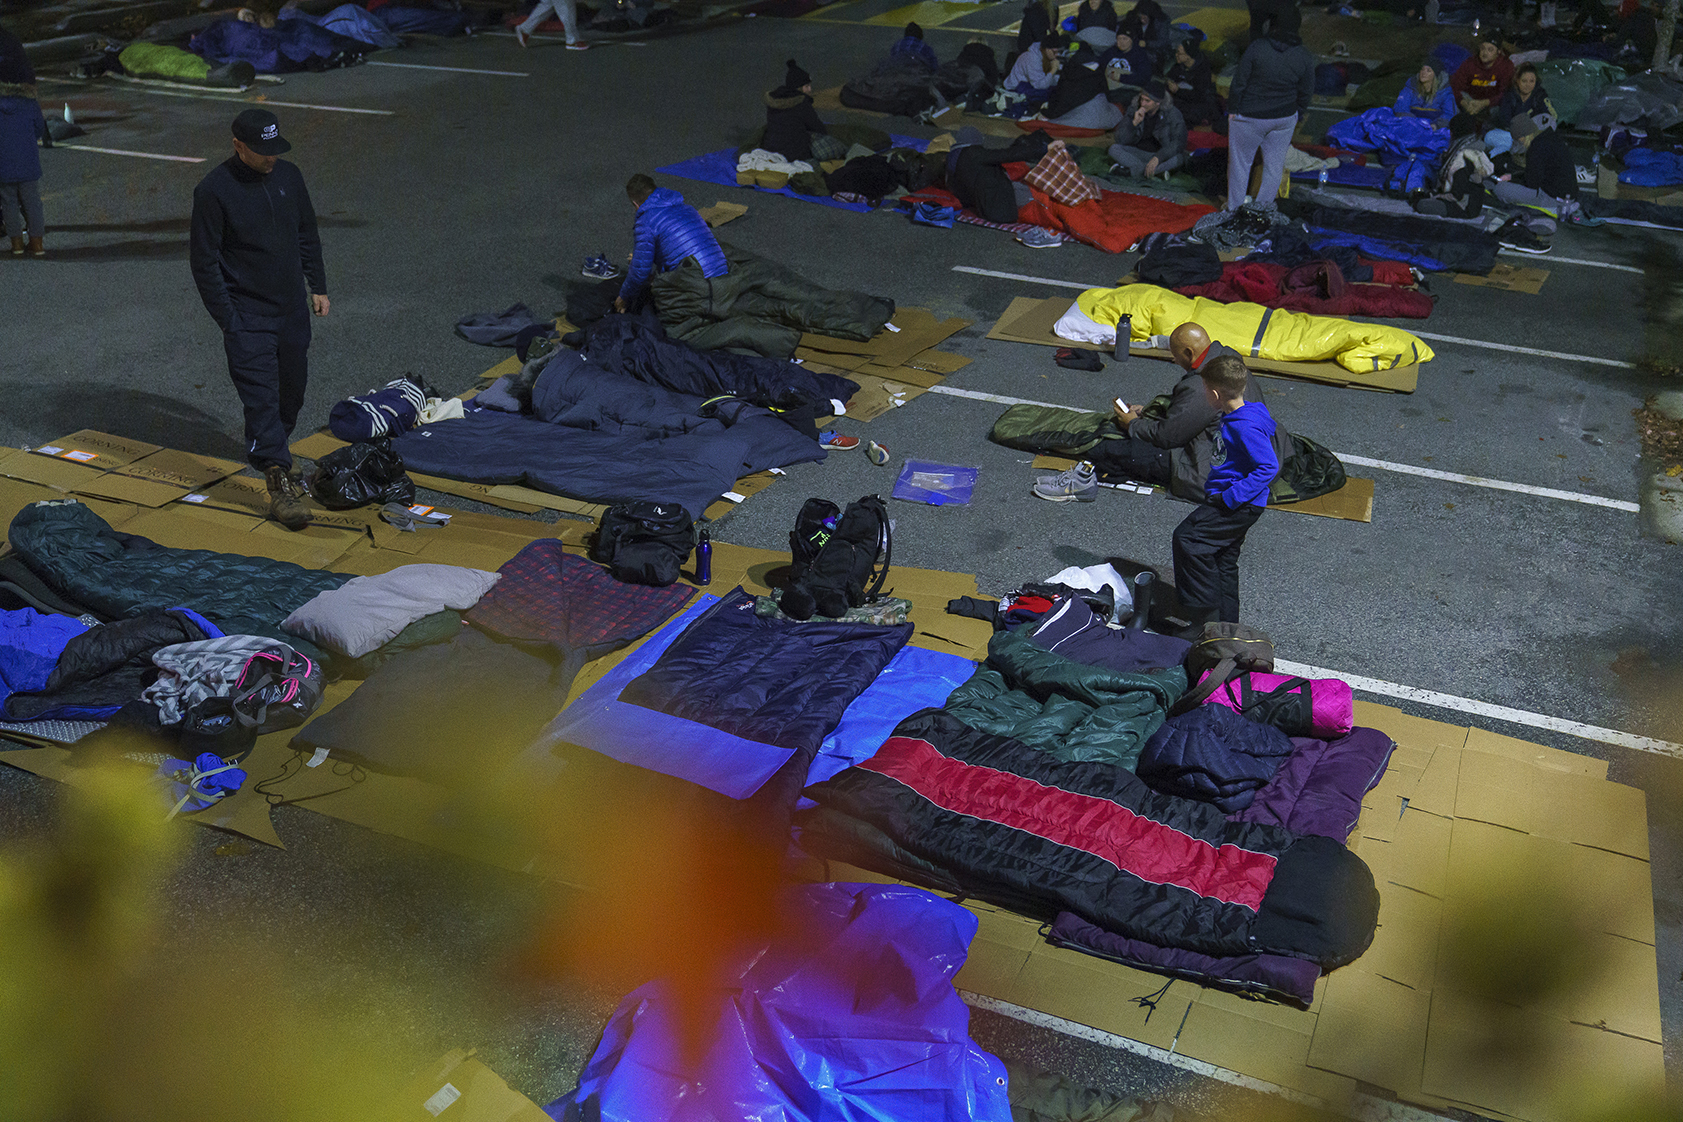 The JRG team sleeps outside for one night in support